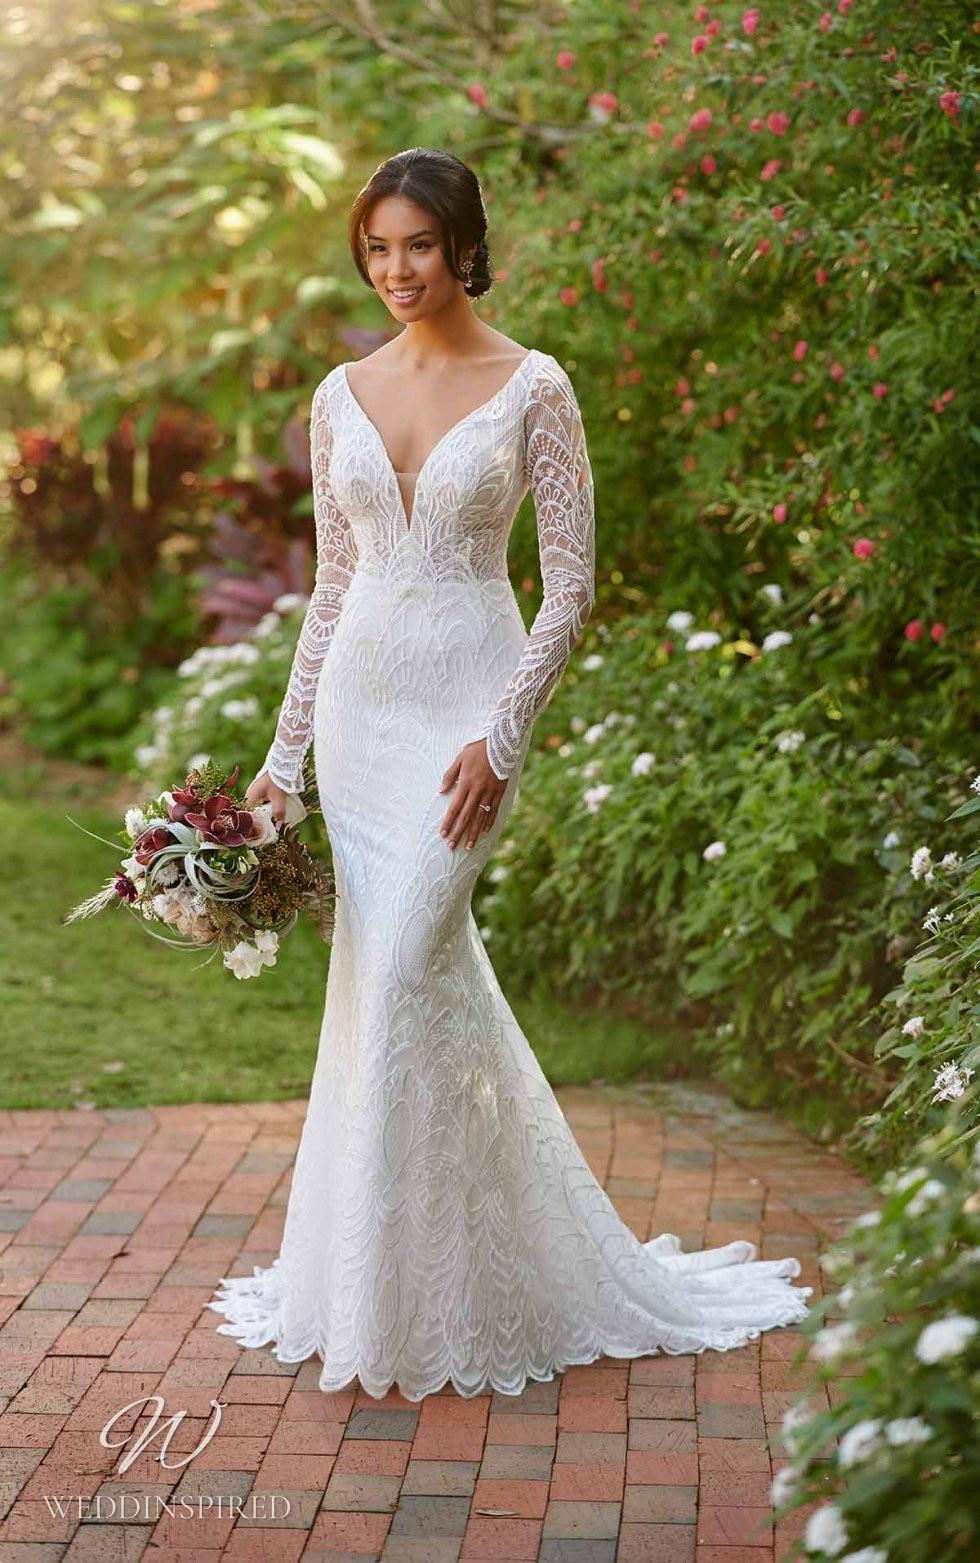 An Essense of Australia lace mermaid wedding dress with long sleeves